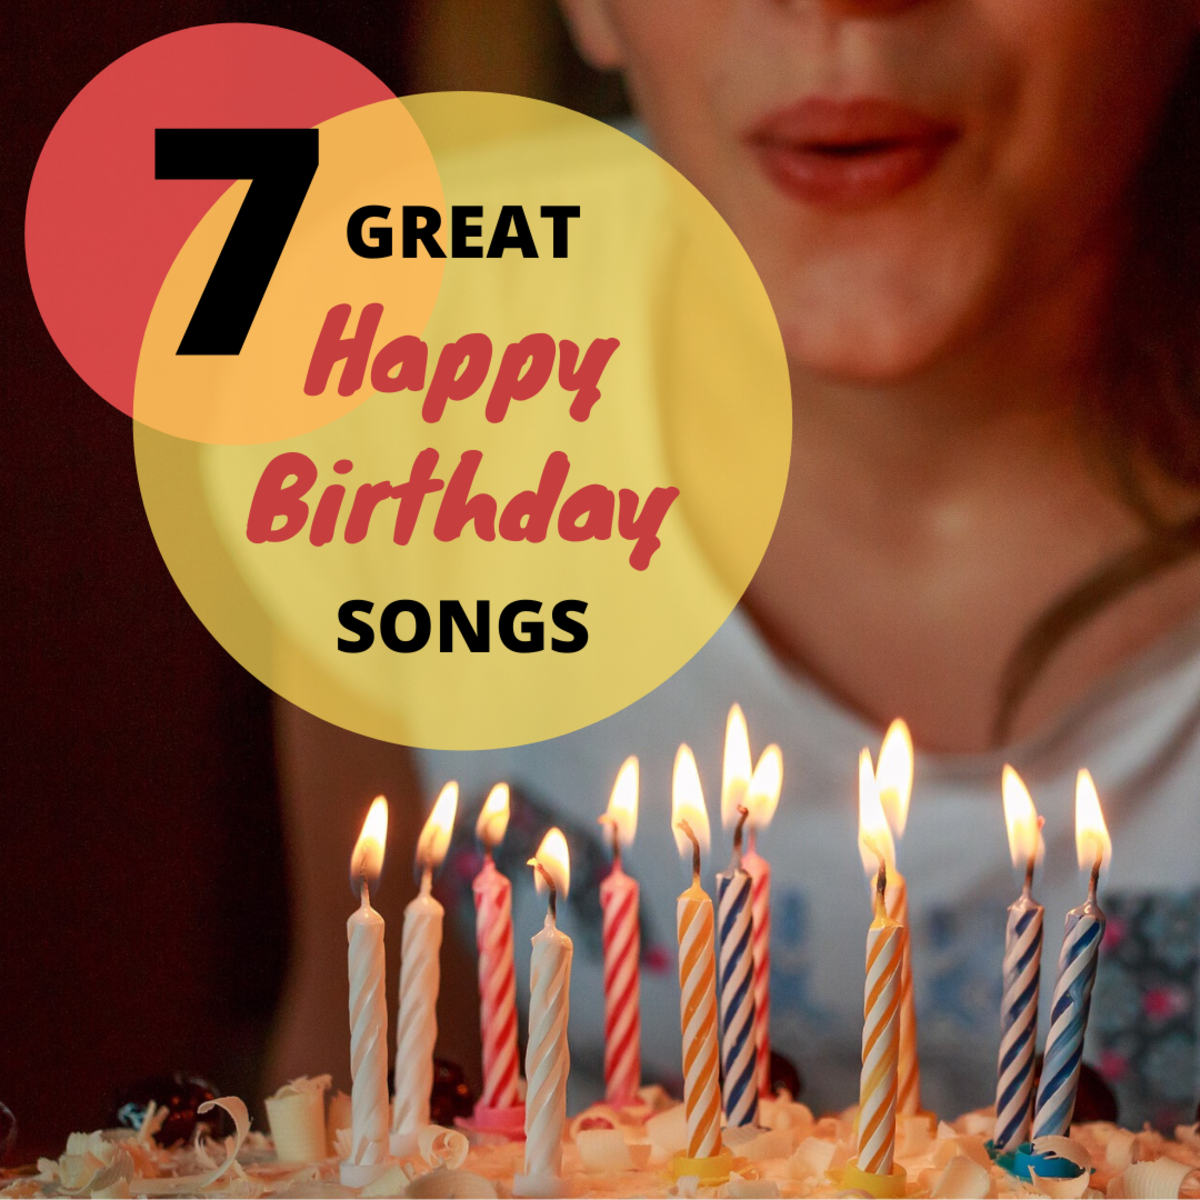 Astounding 7 Of The Best Happy Birthday Songs Traditional And Funny Holidappy Personalised Birthday Cards Veneteletsinfo